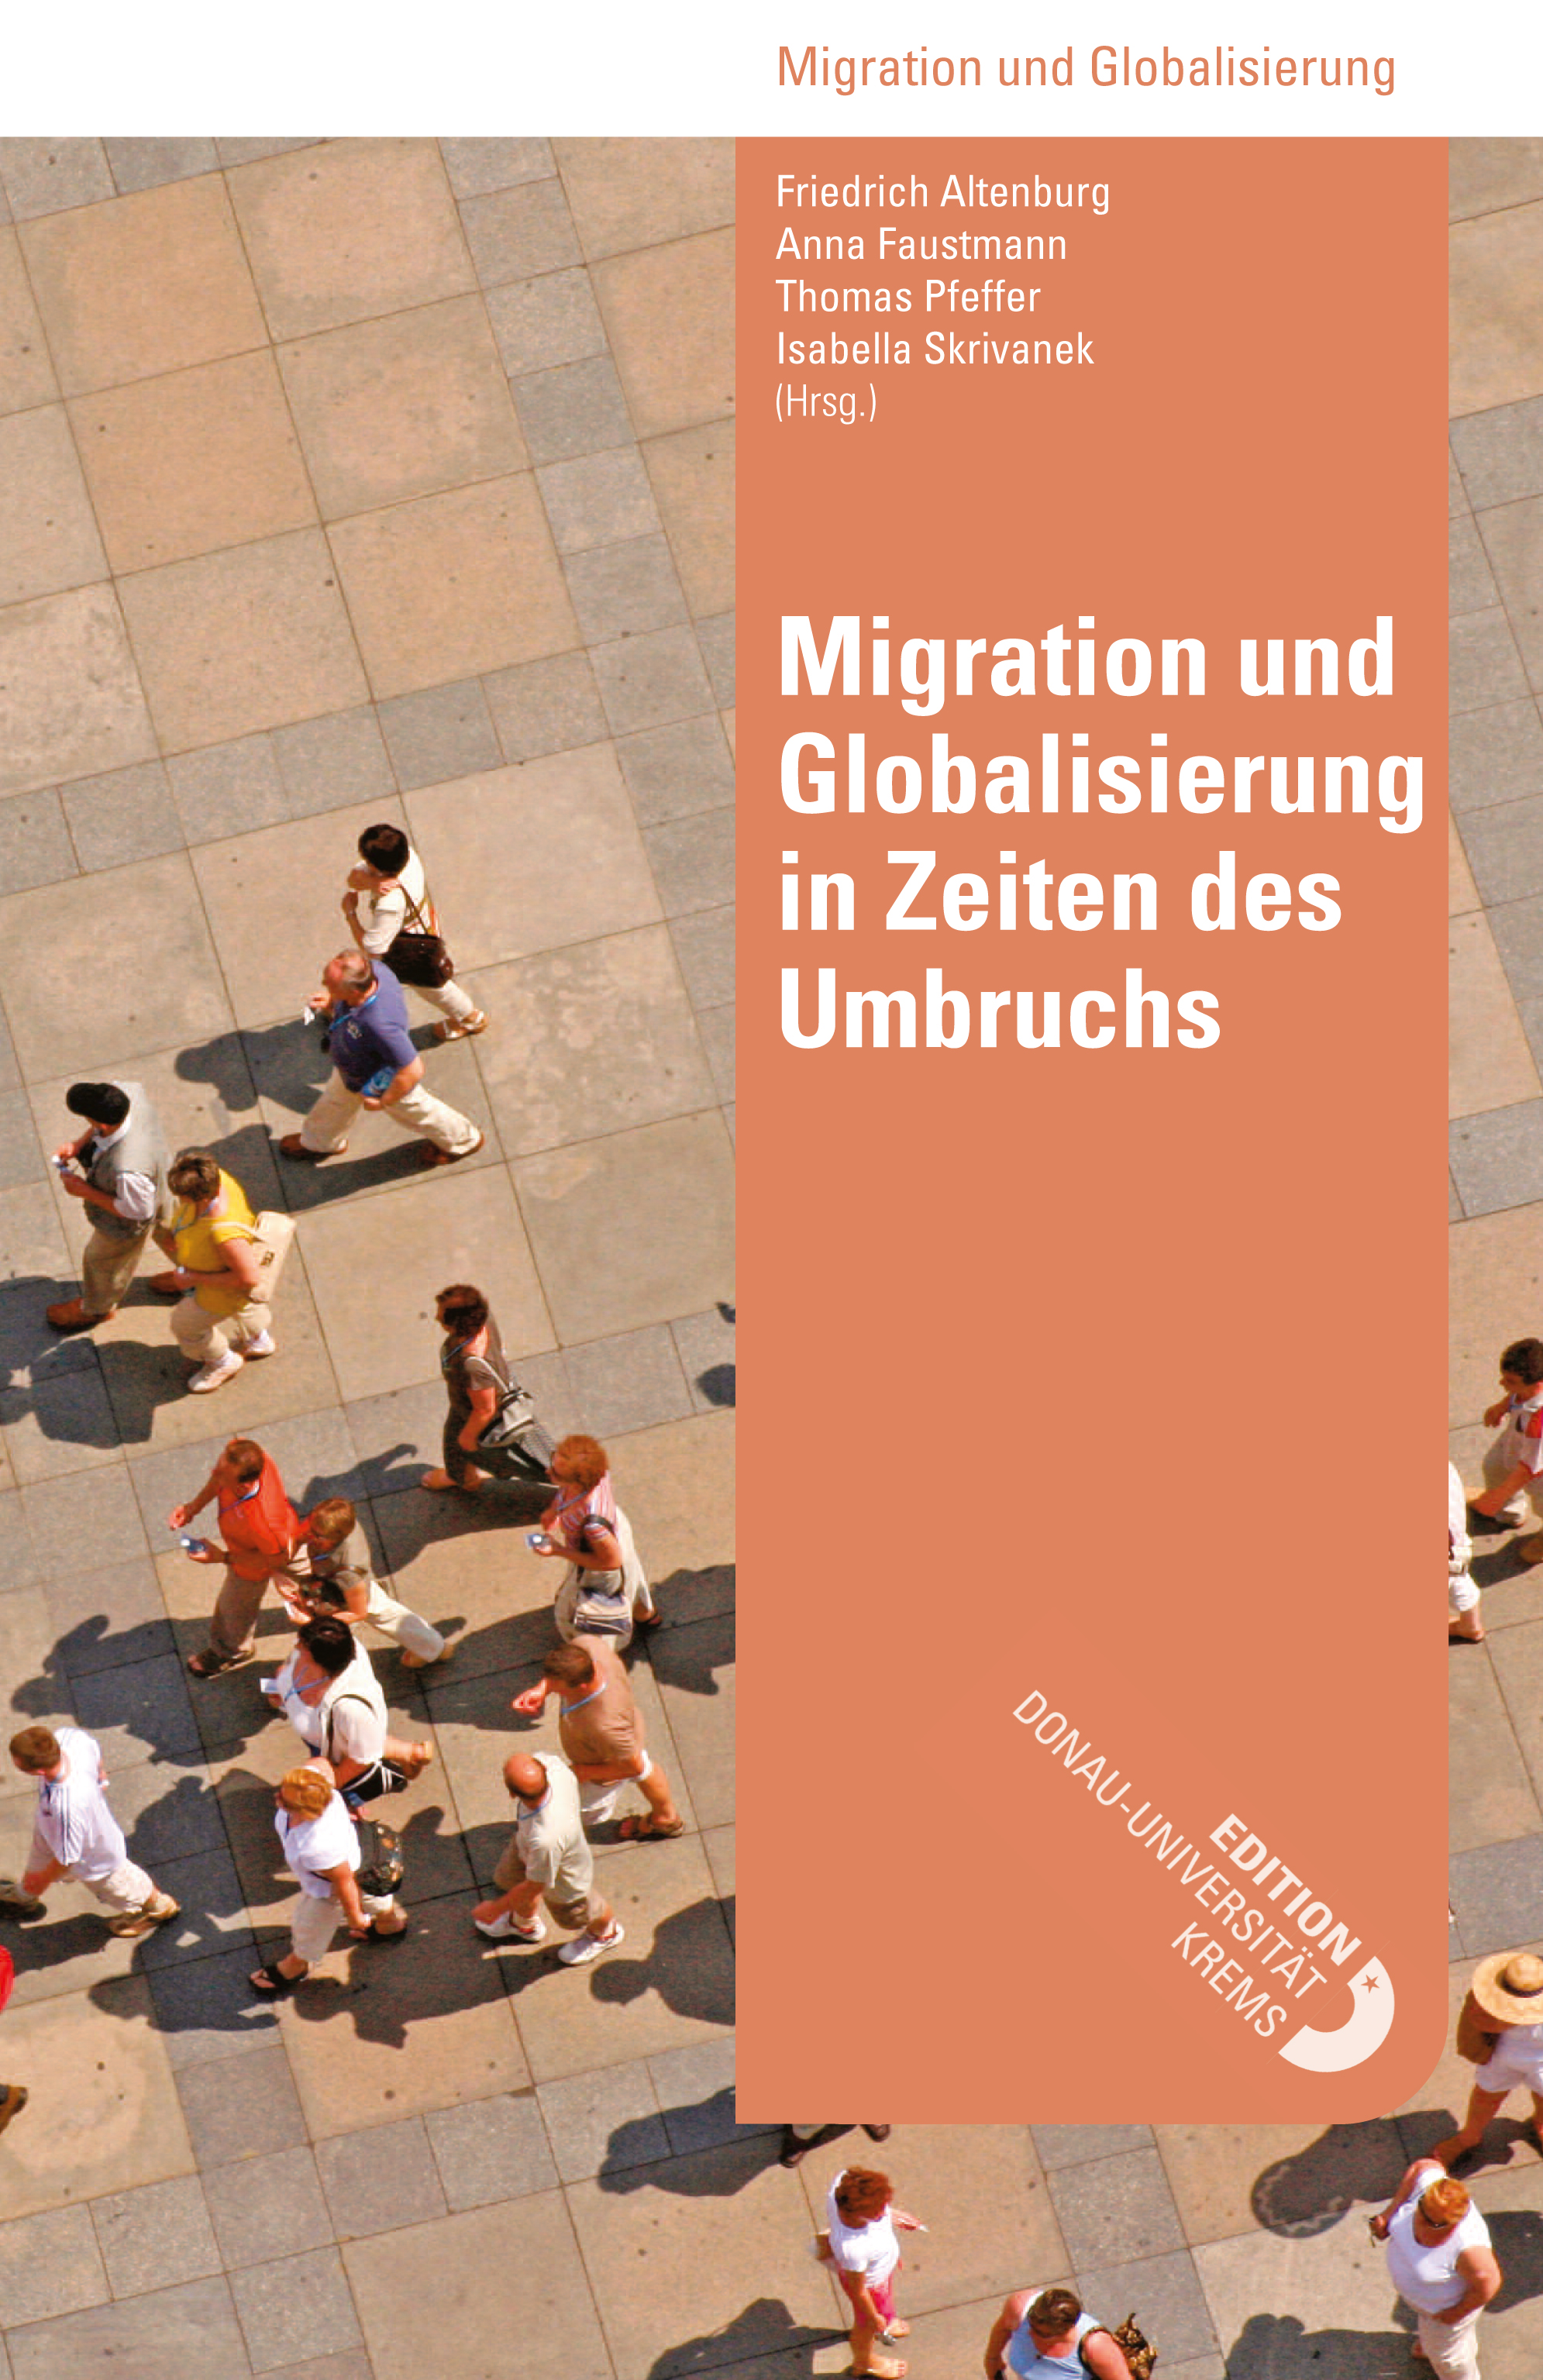 https://www.donau-uni.ac.at/imperia/md/content/department/migrationglobalisierung/publikationen/_gesamt_b.pdf